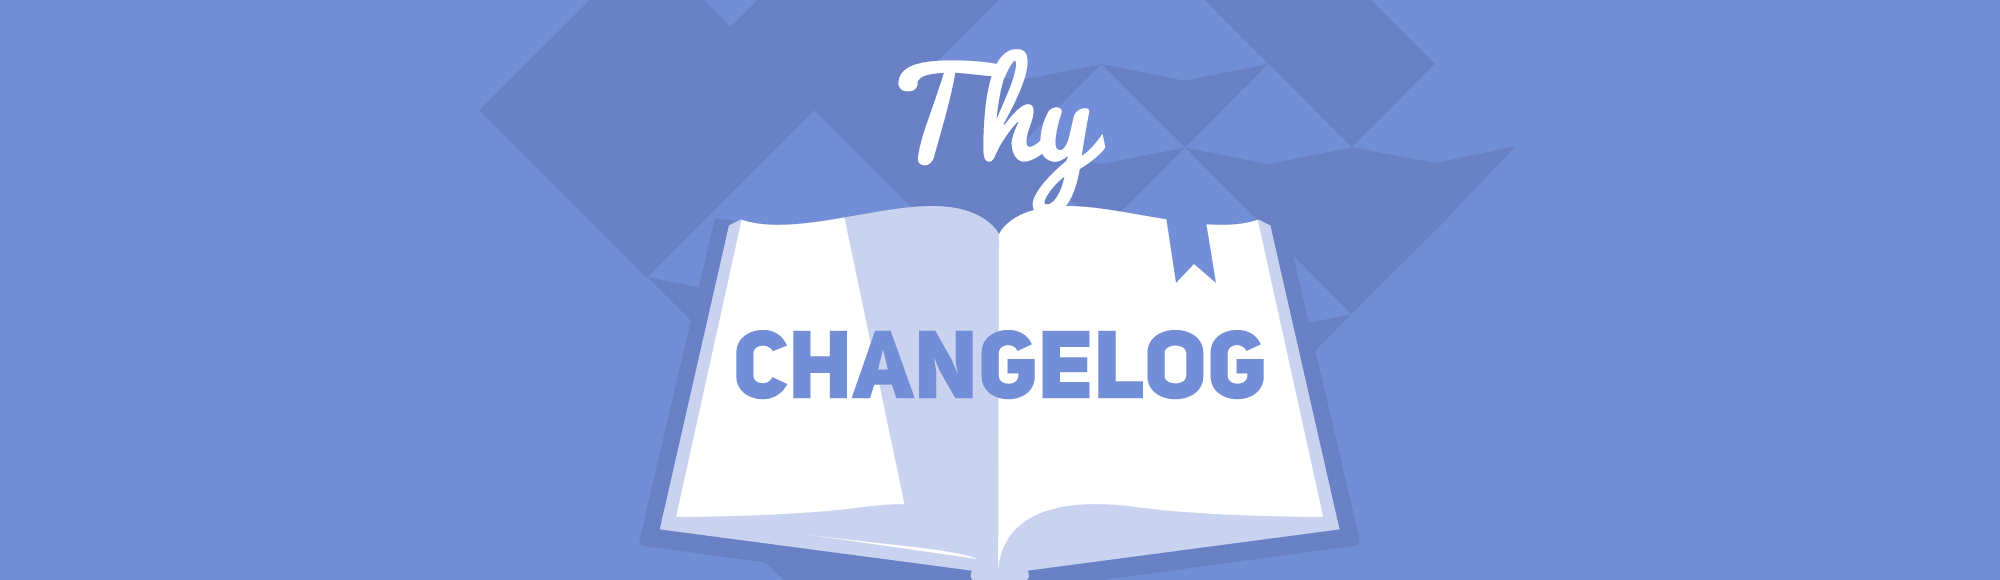 2016 2 18 — Change Log - Discord Blog